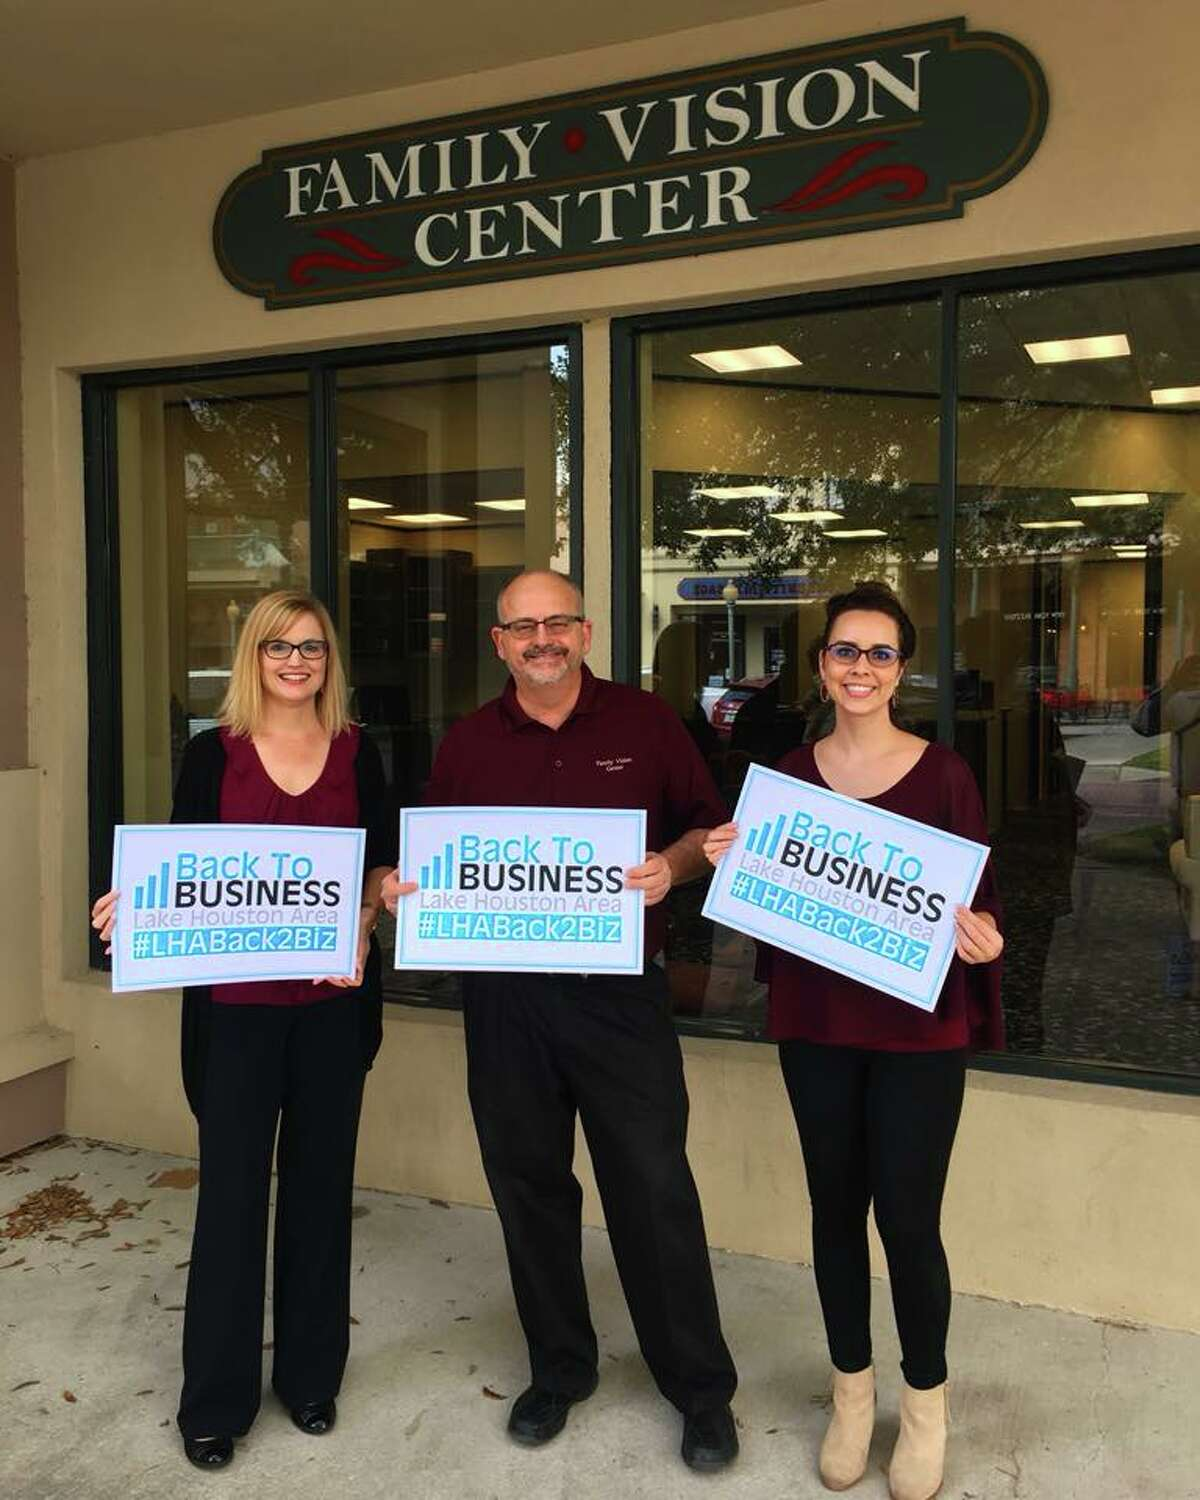 The Family Vision Center has reopened.